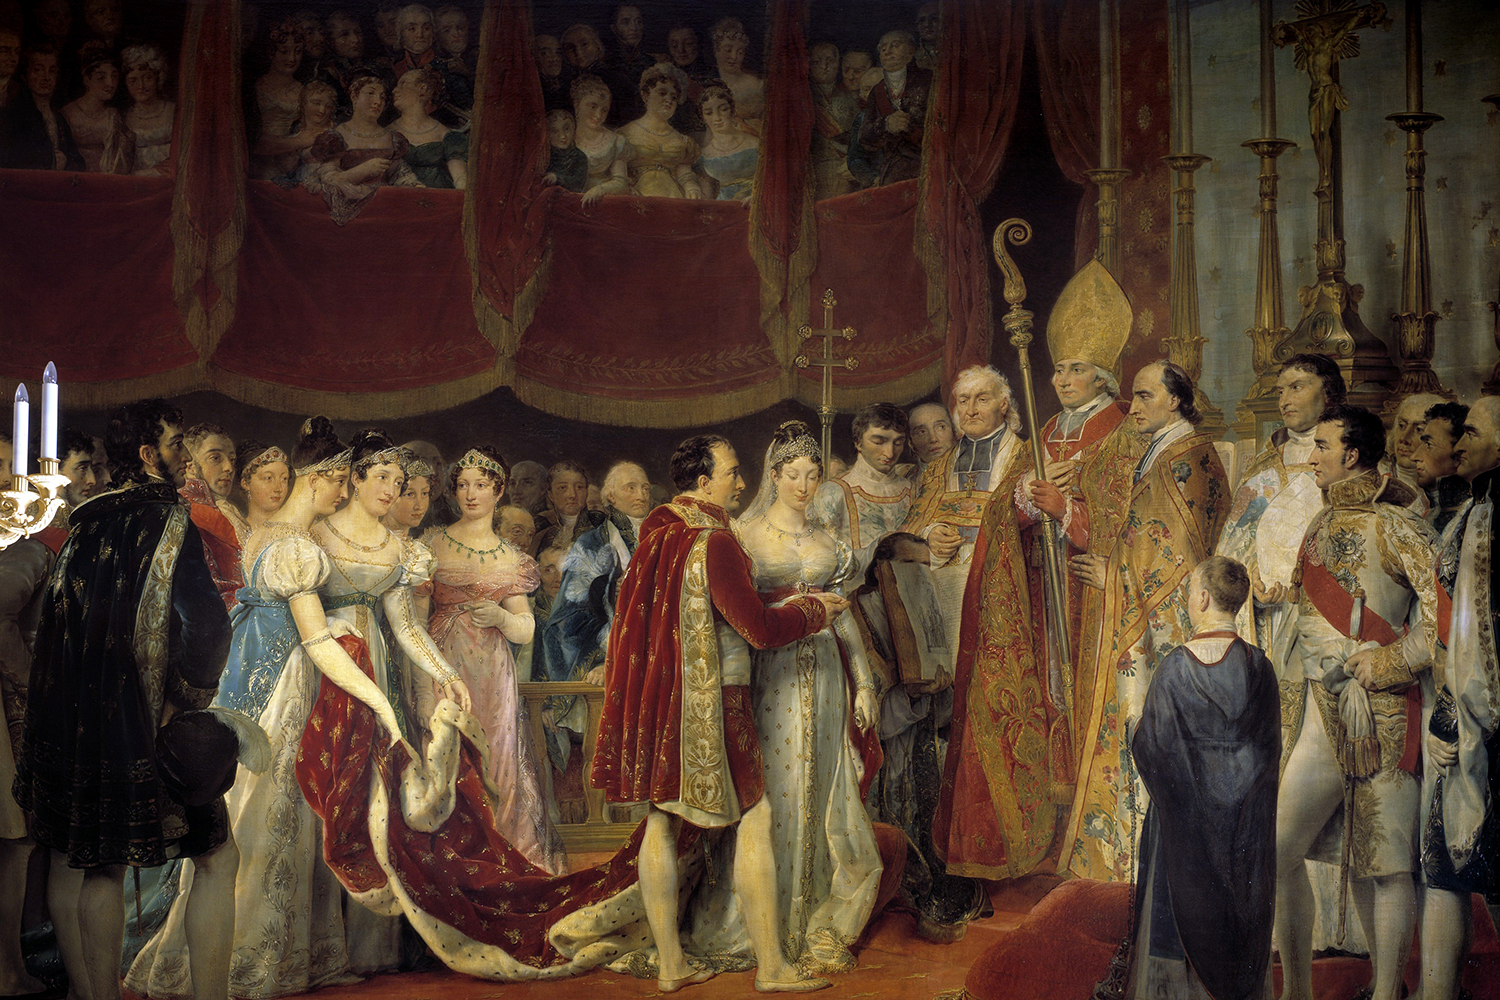 The marriage of Napoleon I and Austria's Archduchess Marie Louise de Habsburg-Lorraine on April 2, 1810, was Napoleon's second. He parted from his first wife after their union failed to produce an heir, and he deemed a new marriage in the best interest of France.